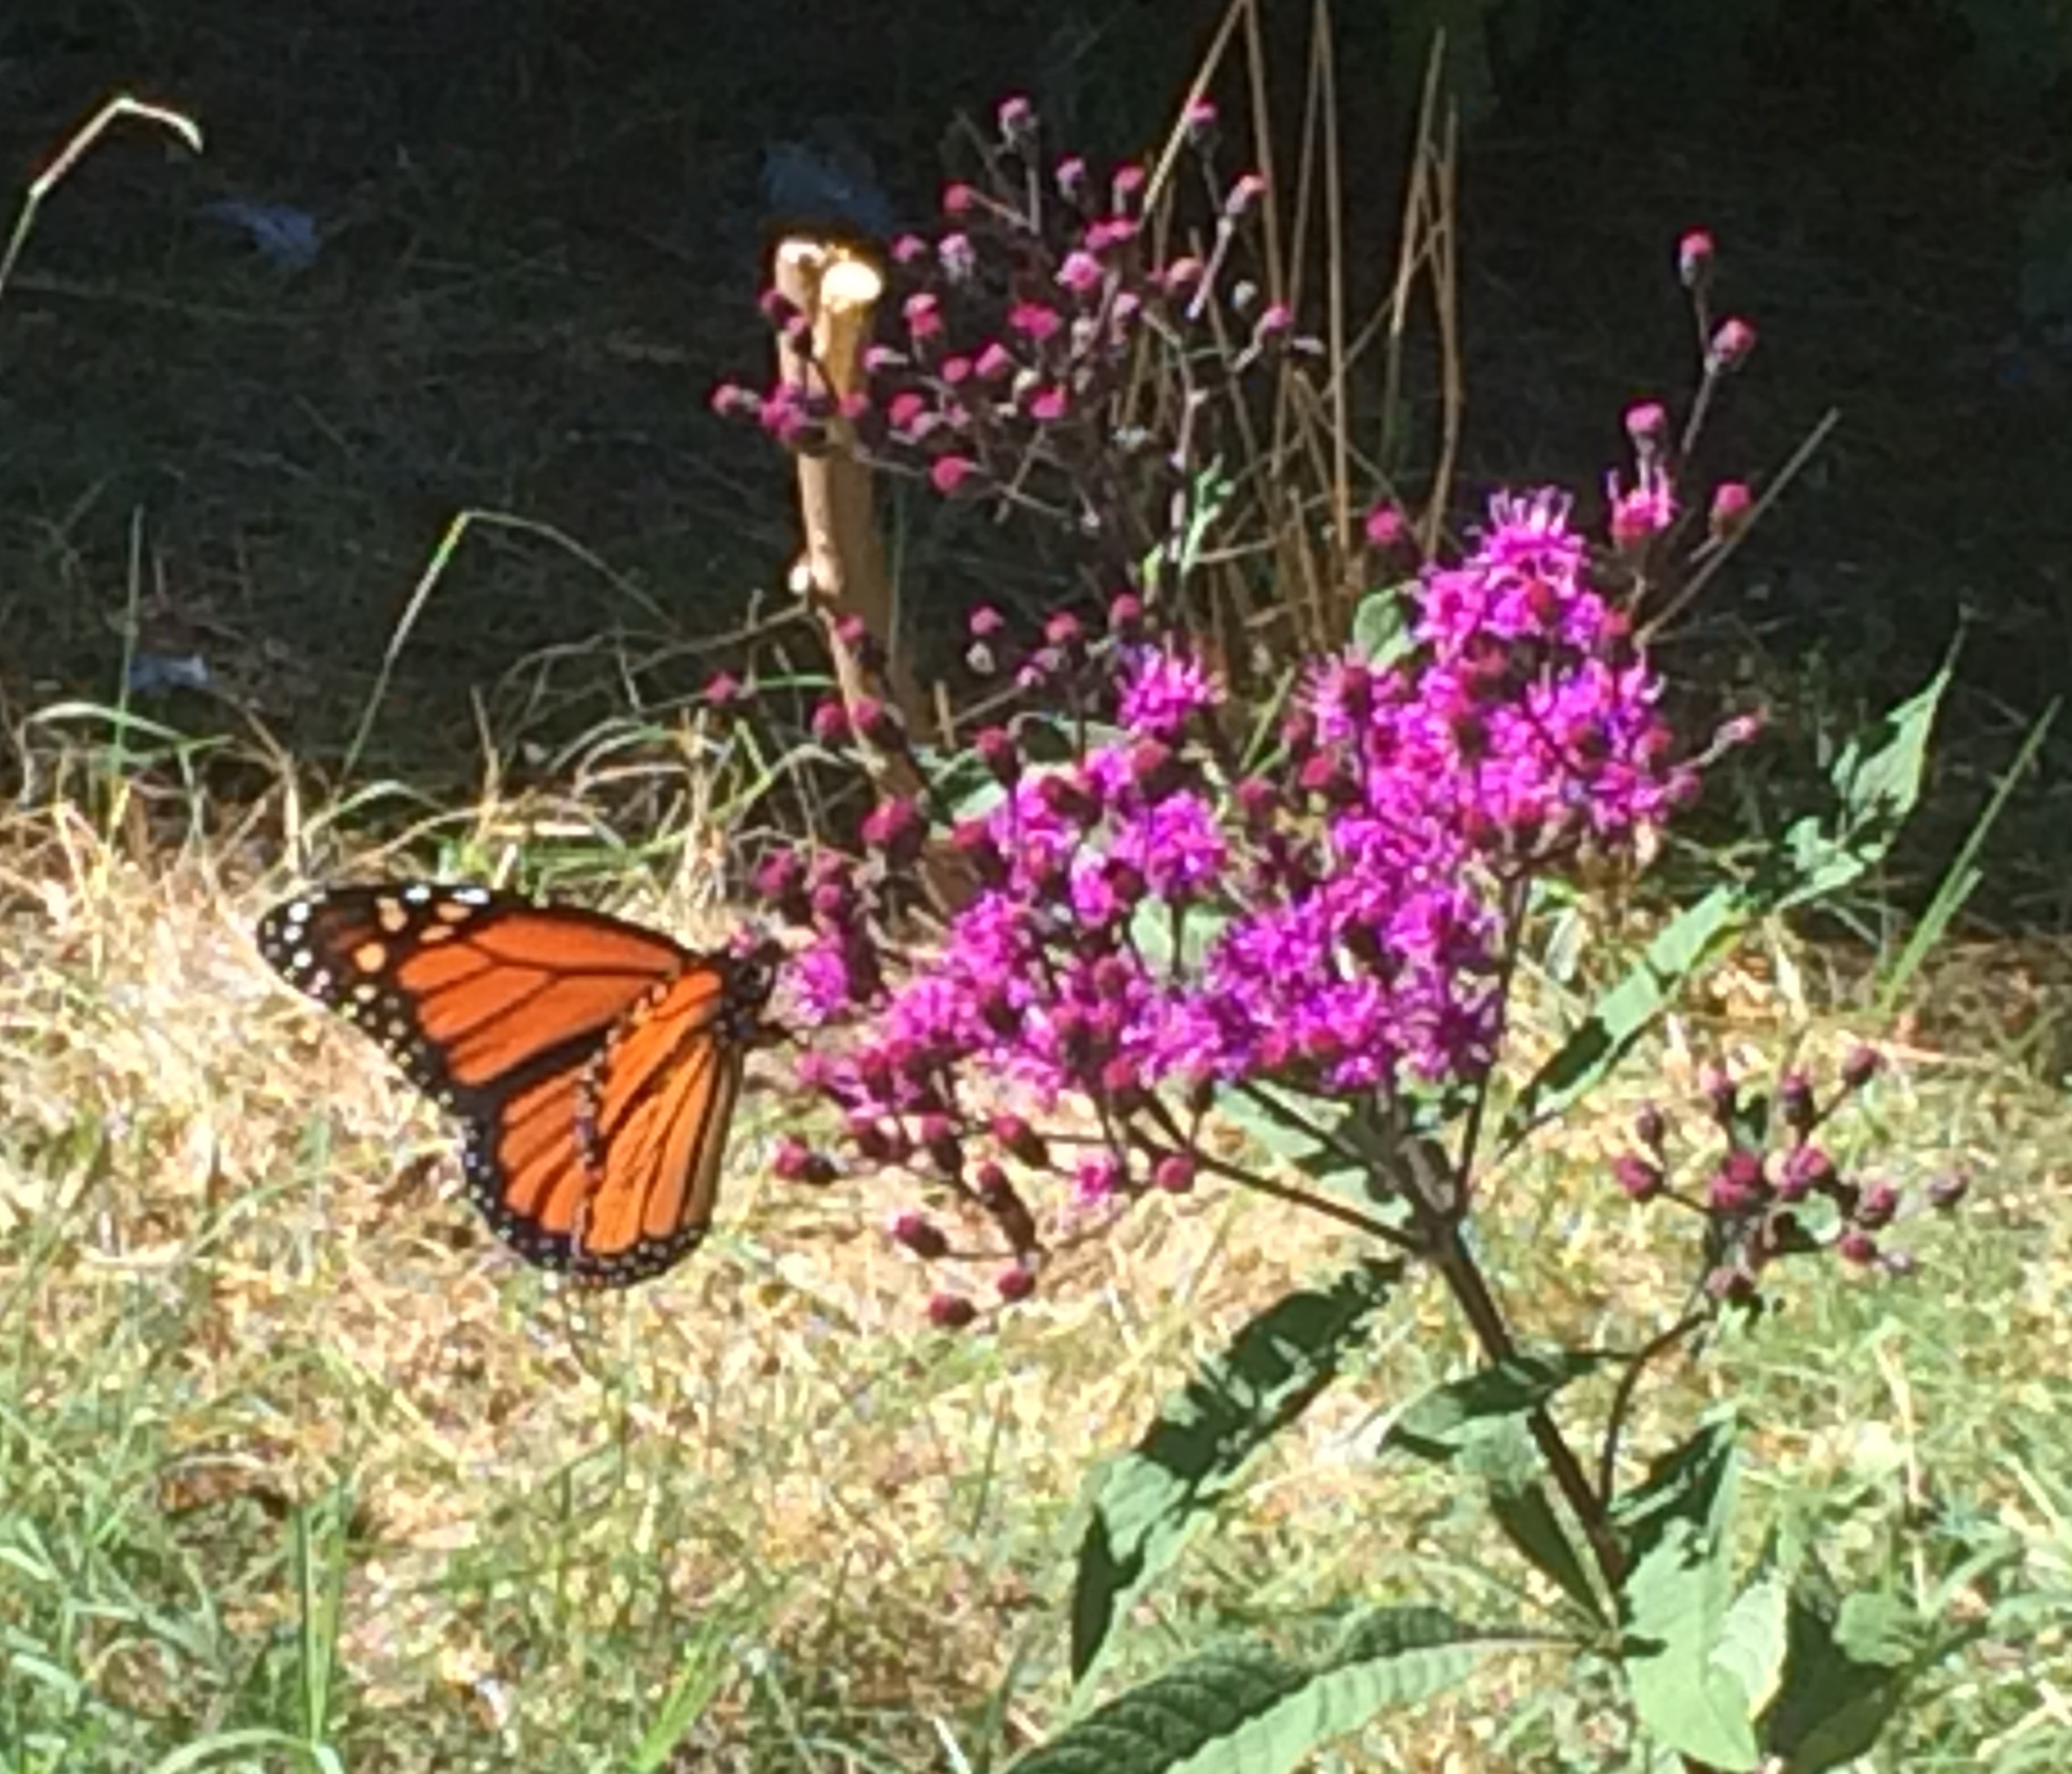 Butterfly Garden - Butterfly Garden (c. 2016): Thanks to a generous Arbor Day and KU Plant for the Planet Grant, MMSK developed a butterfly garden across the stream from the school building. The garden was established to help attract pollinators like butterflies and moths, since many natural butterfly habitats have been lost to human activities like building homes, roads and farms. Plants were carefully selected for their attractiveness to butterflies and bees, as well as for their ability to serve as food for growing caterpillars and adult butterflies. The placement of the butterfly garden between the stream and the orchard was intentional with the goal of attracting our own honey bees and other pollinators towards the apple orchard to assist with pollination. The CMS-MMSK Butterfly Garden was certified through Monarch Watch (monarchwatch.org/) in 2017.